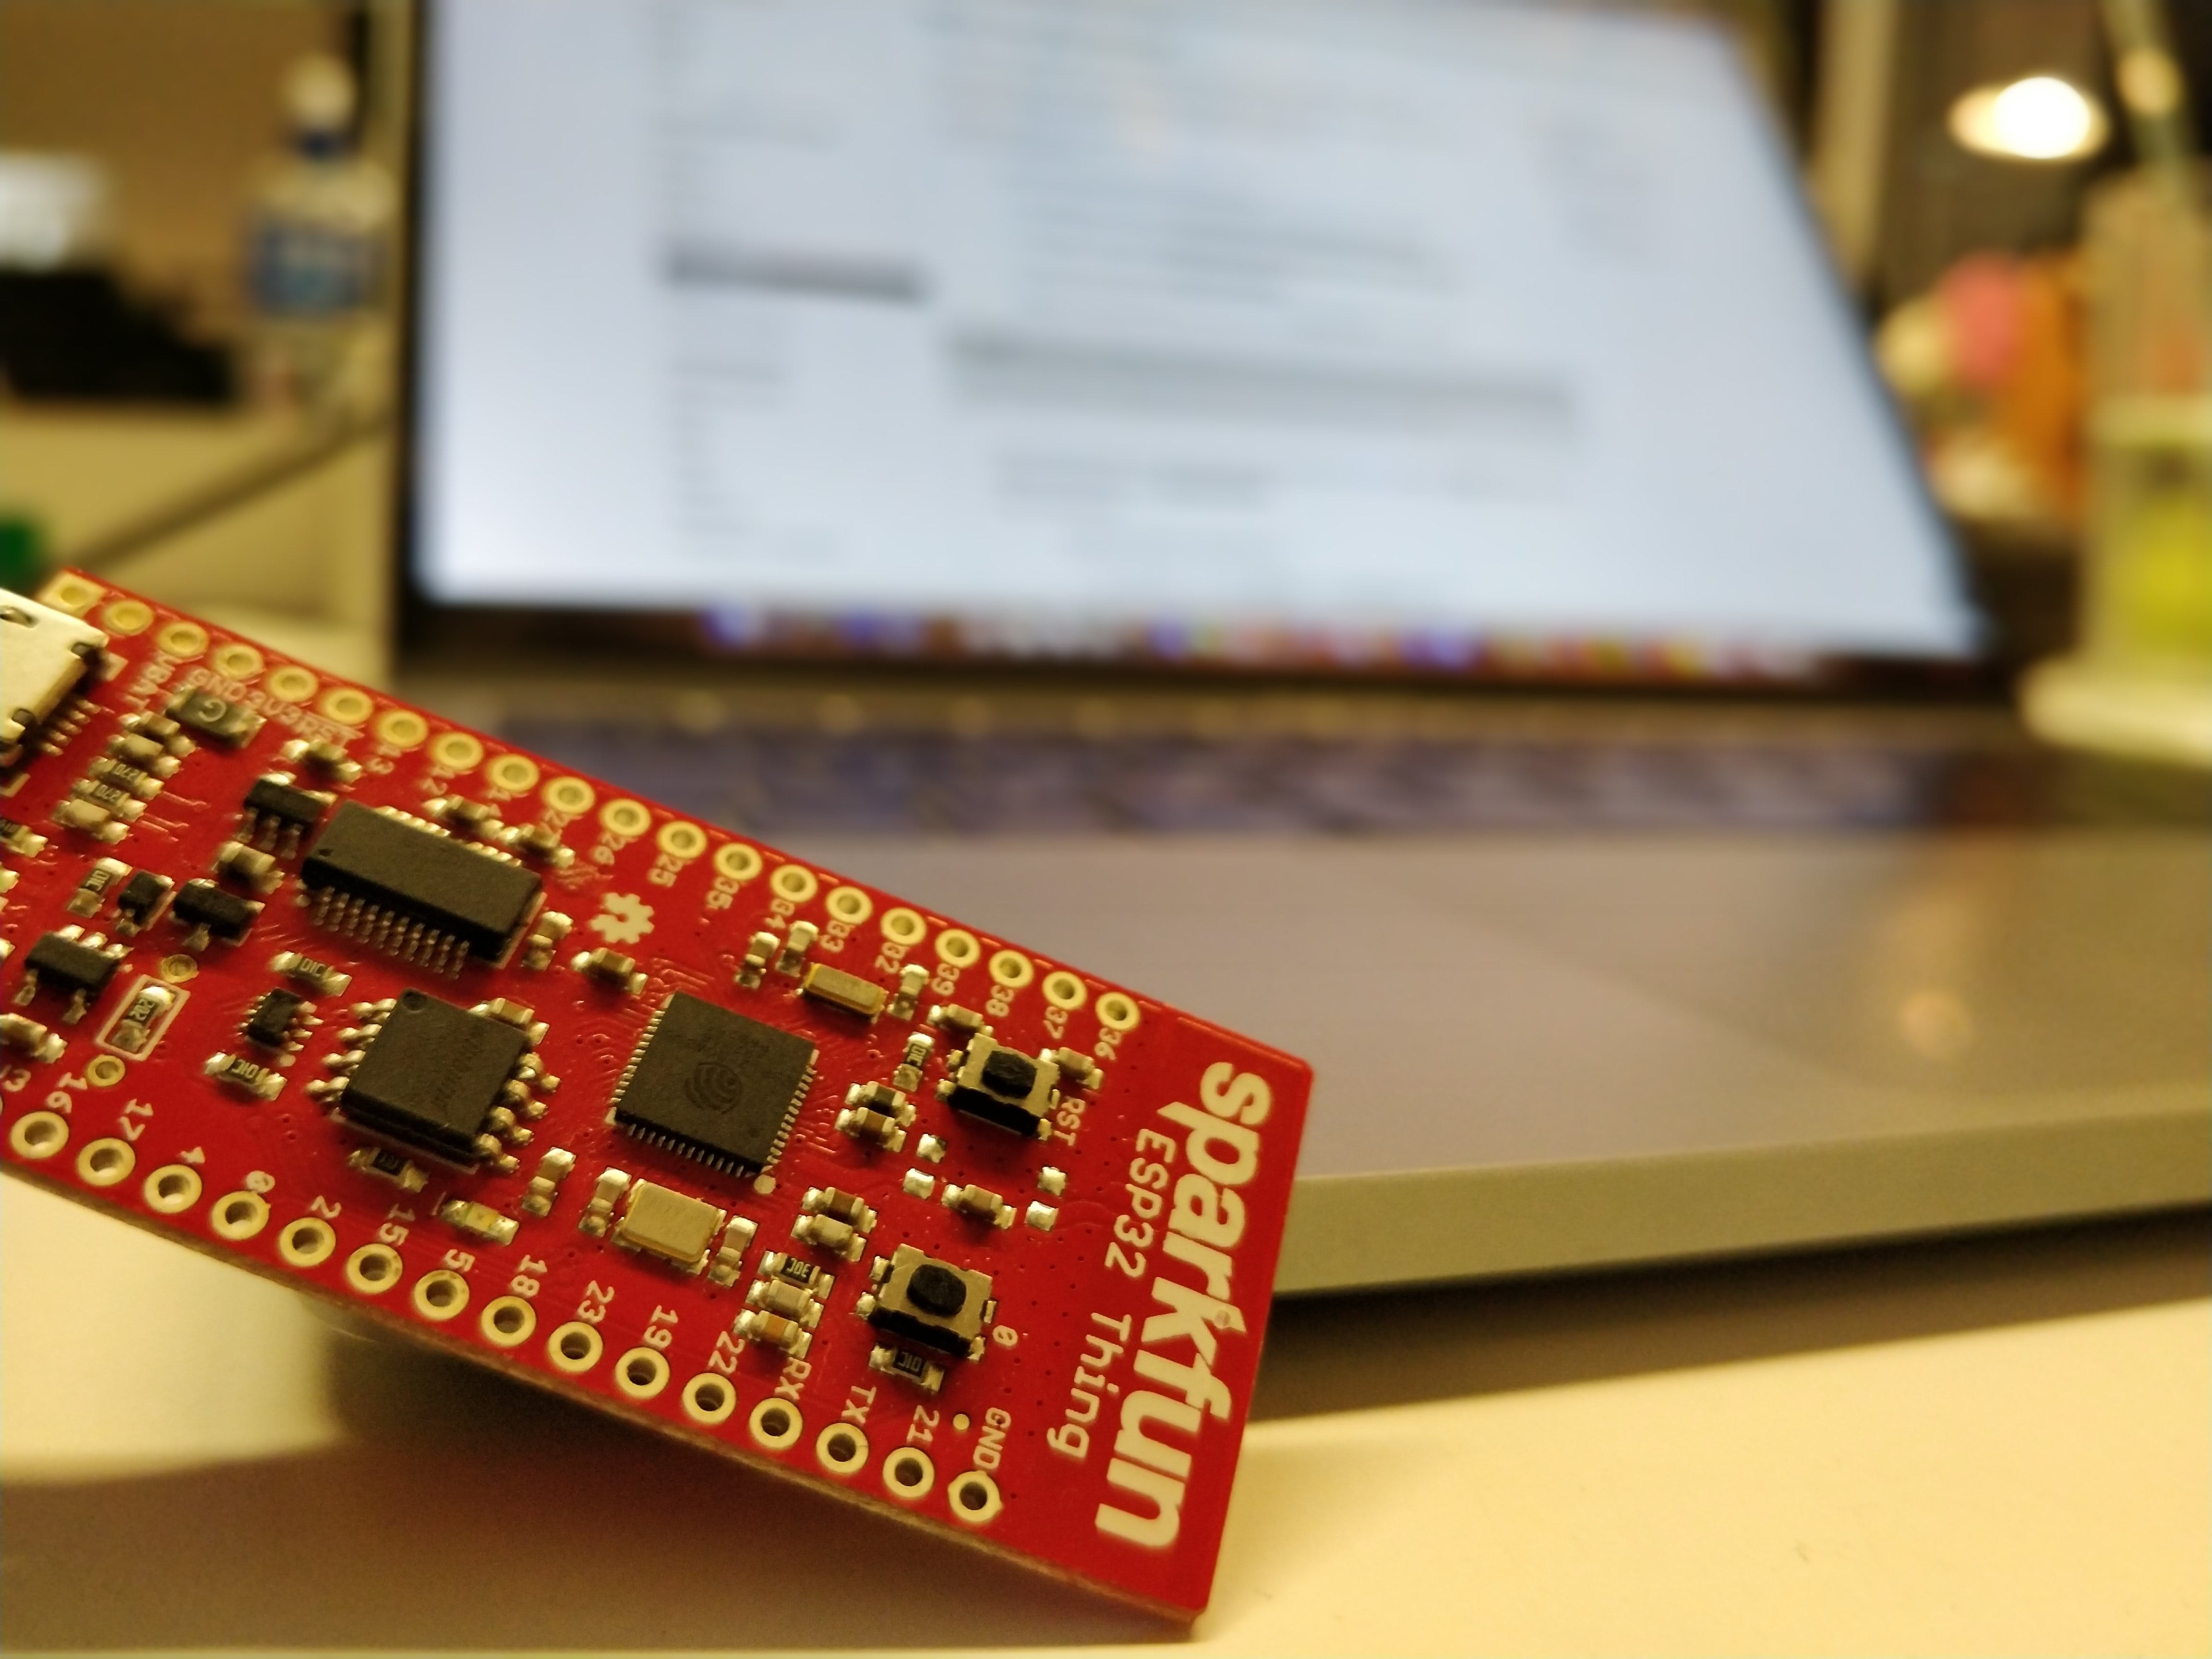 Publish Any Event to Wia Using Your SparkFun ESP32 Thing